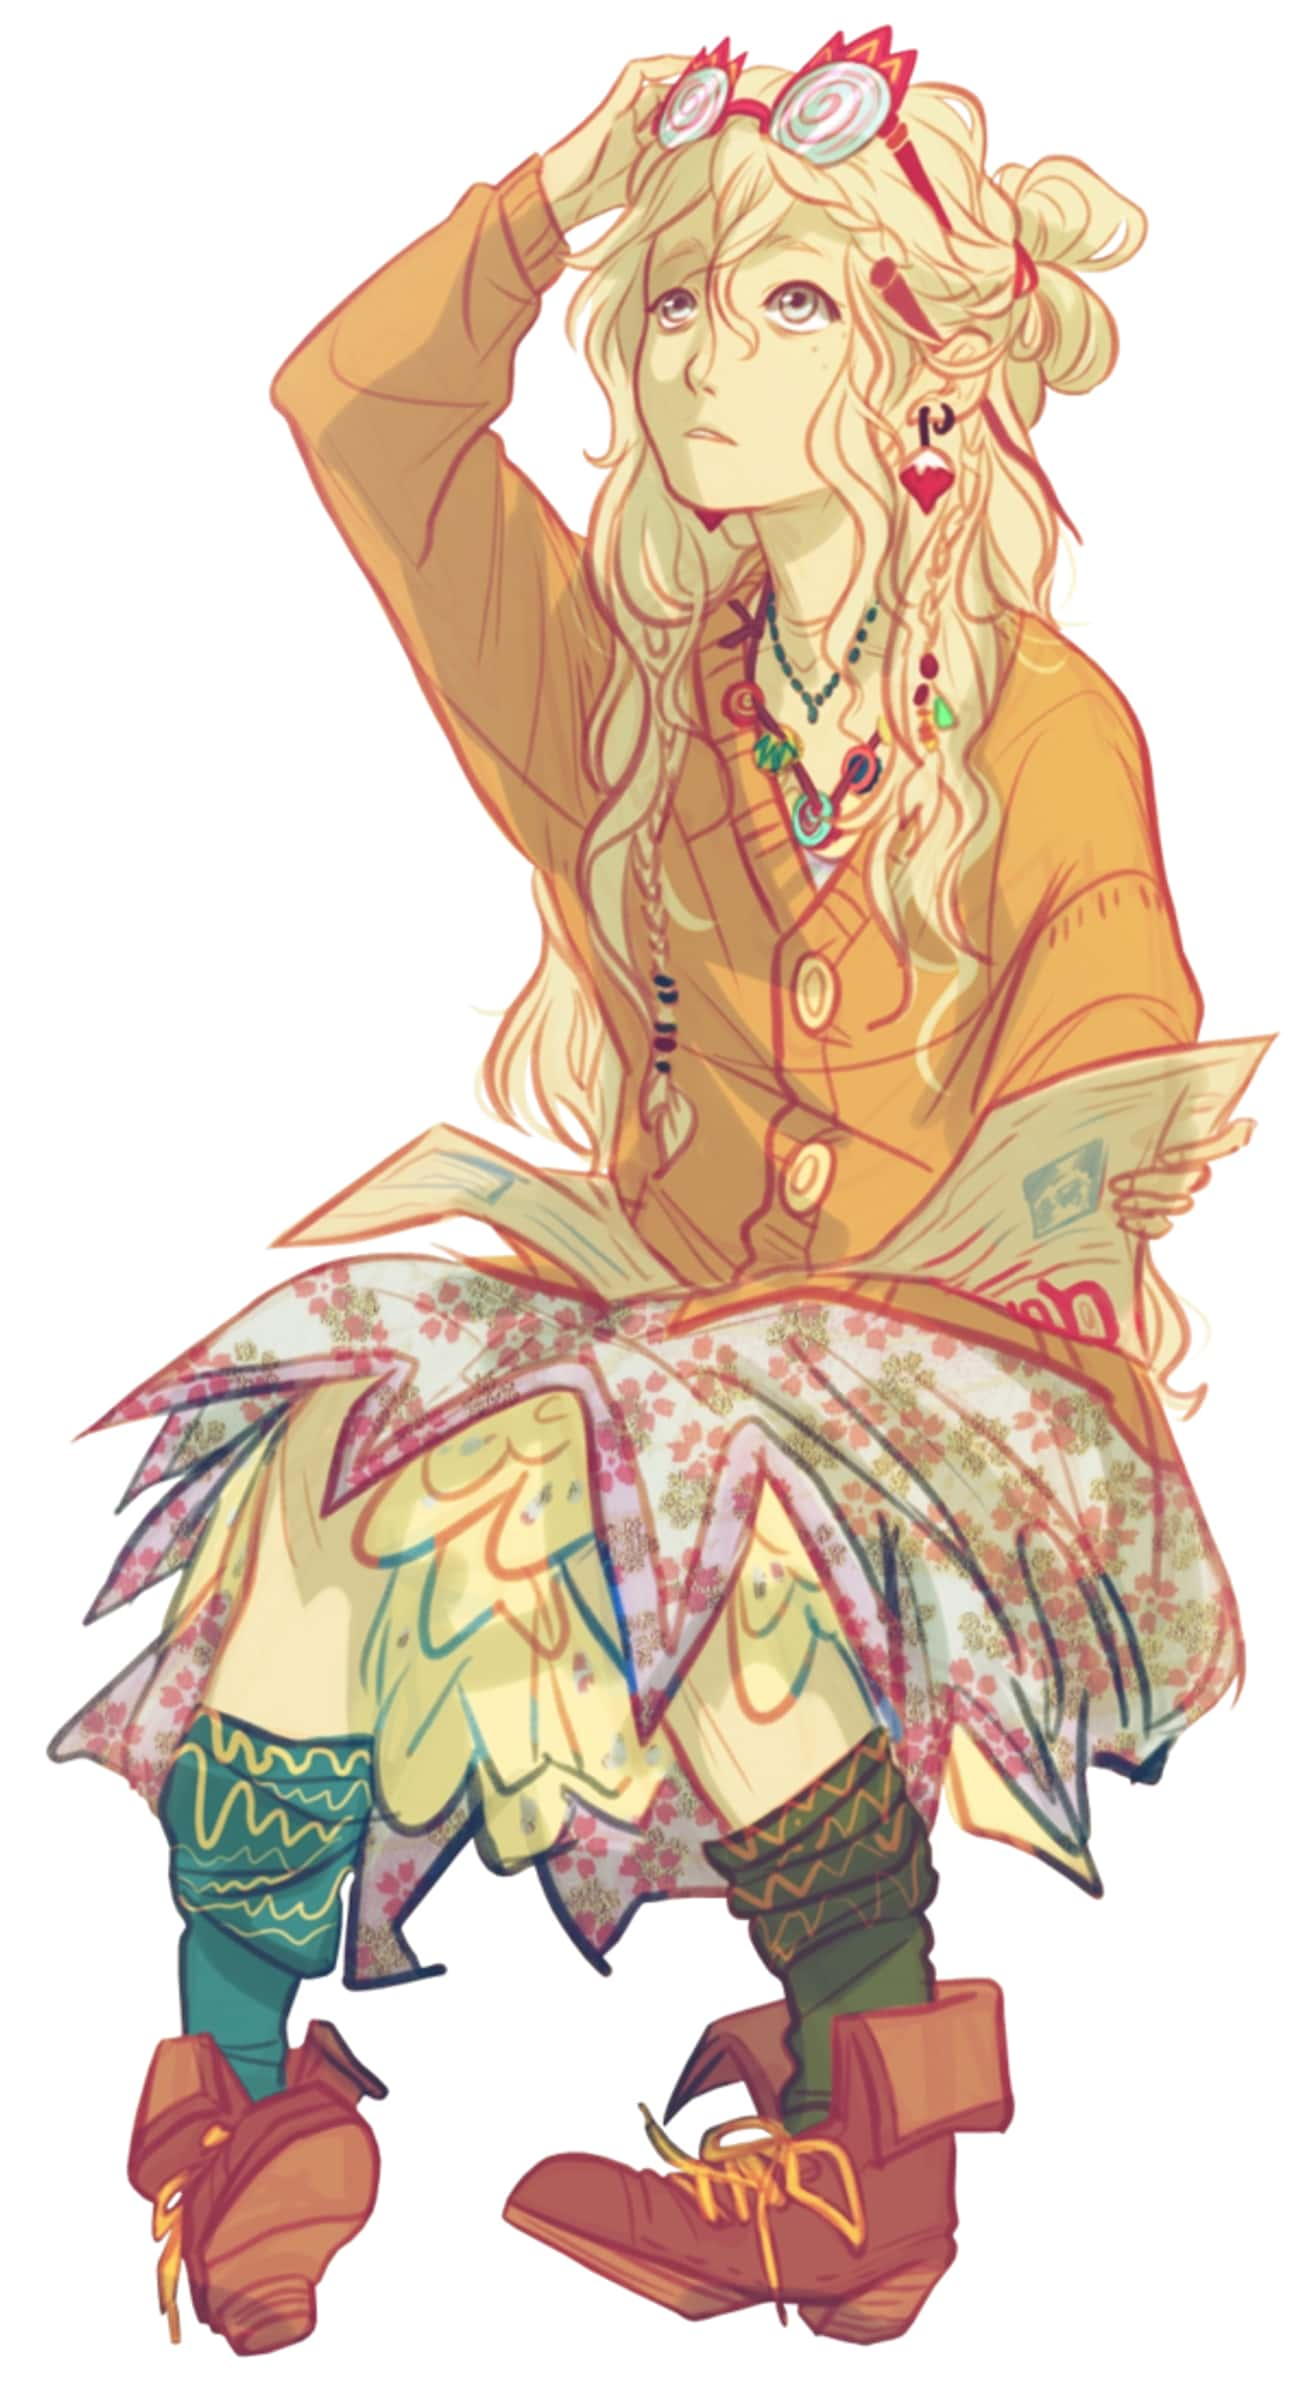 Luna Lovegood Anime is listed (or ranked) 2 on the list 24 Anime Versions Of Harry Potter Characters You Wish Were From A Real Anime